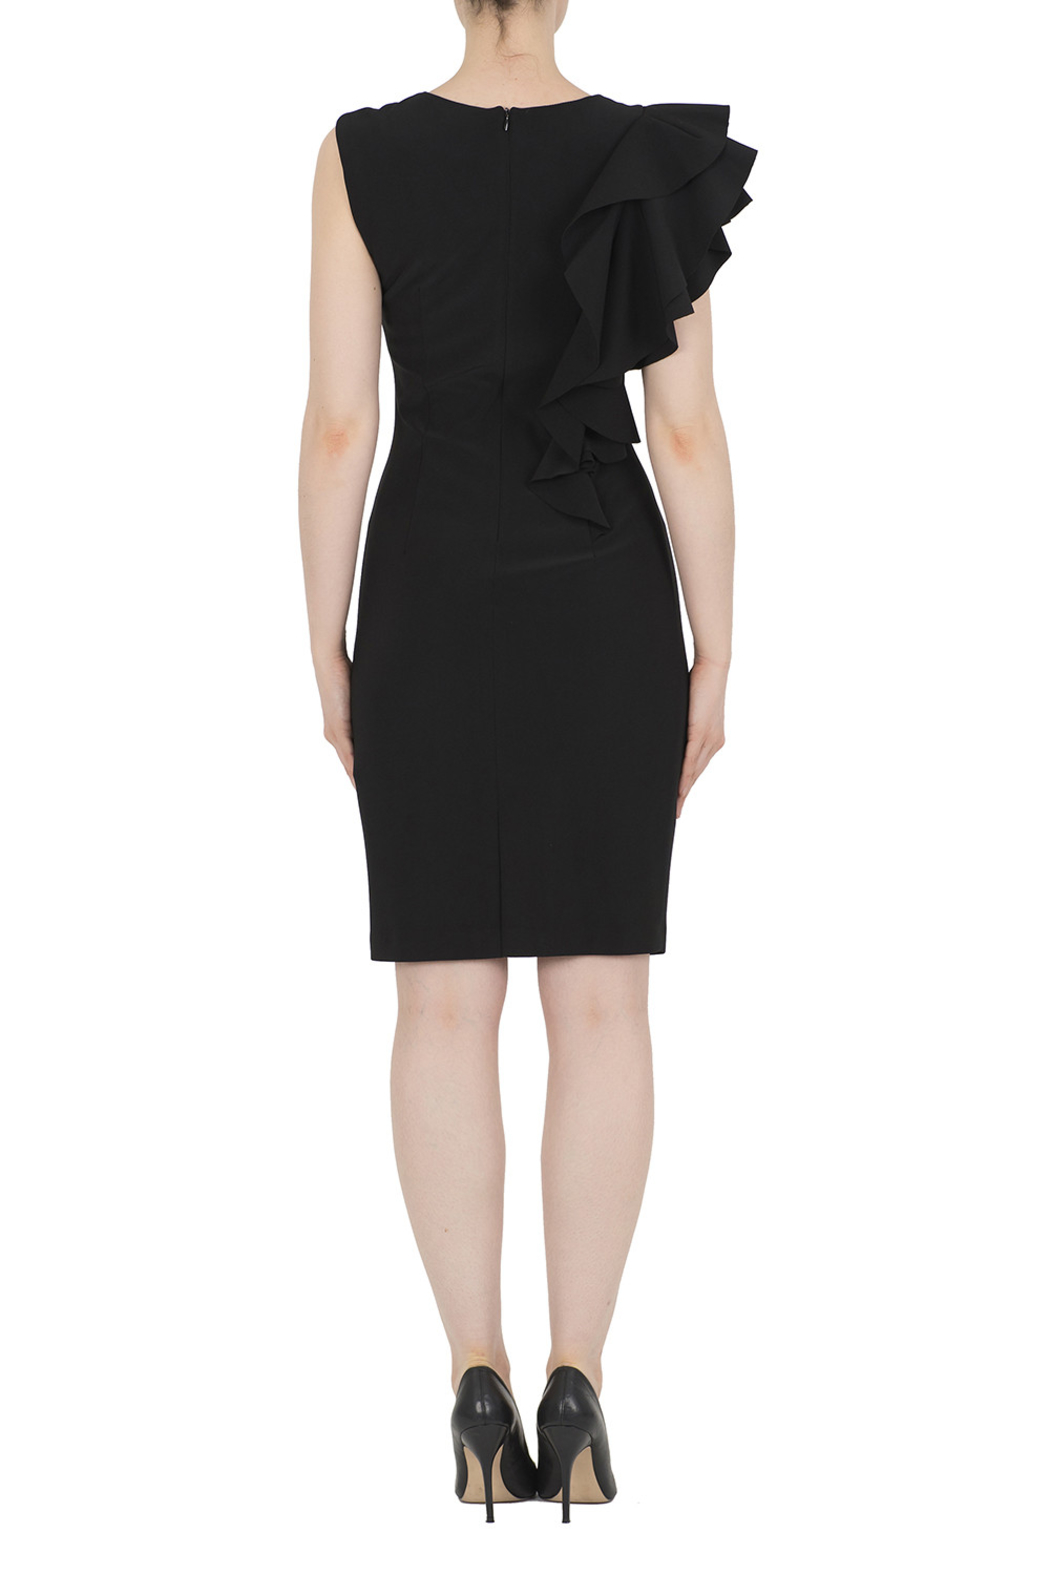 Joseph Ribkoff Cascading Ruffles Dress, Red or Black - Side Cropped Image